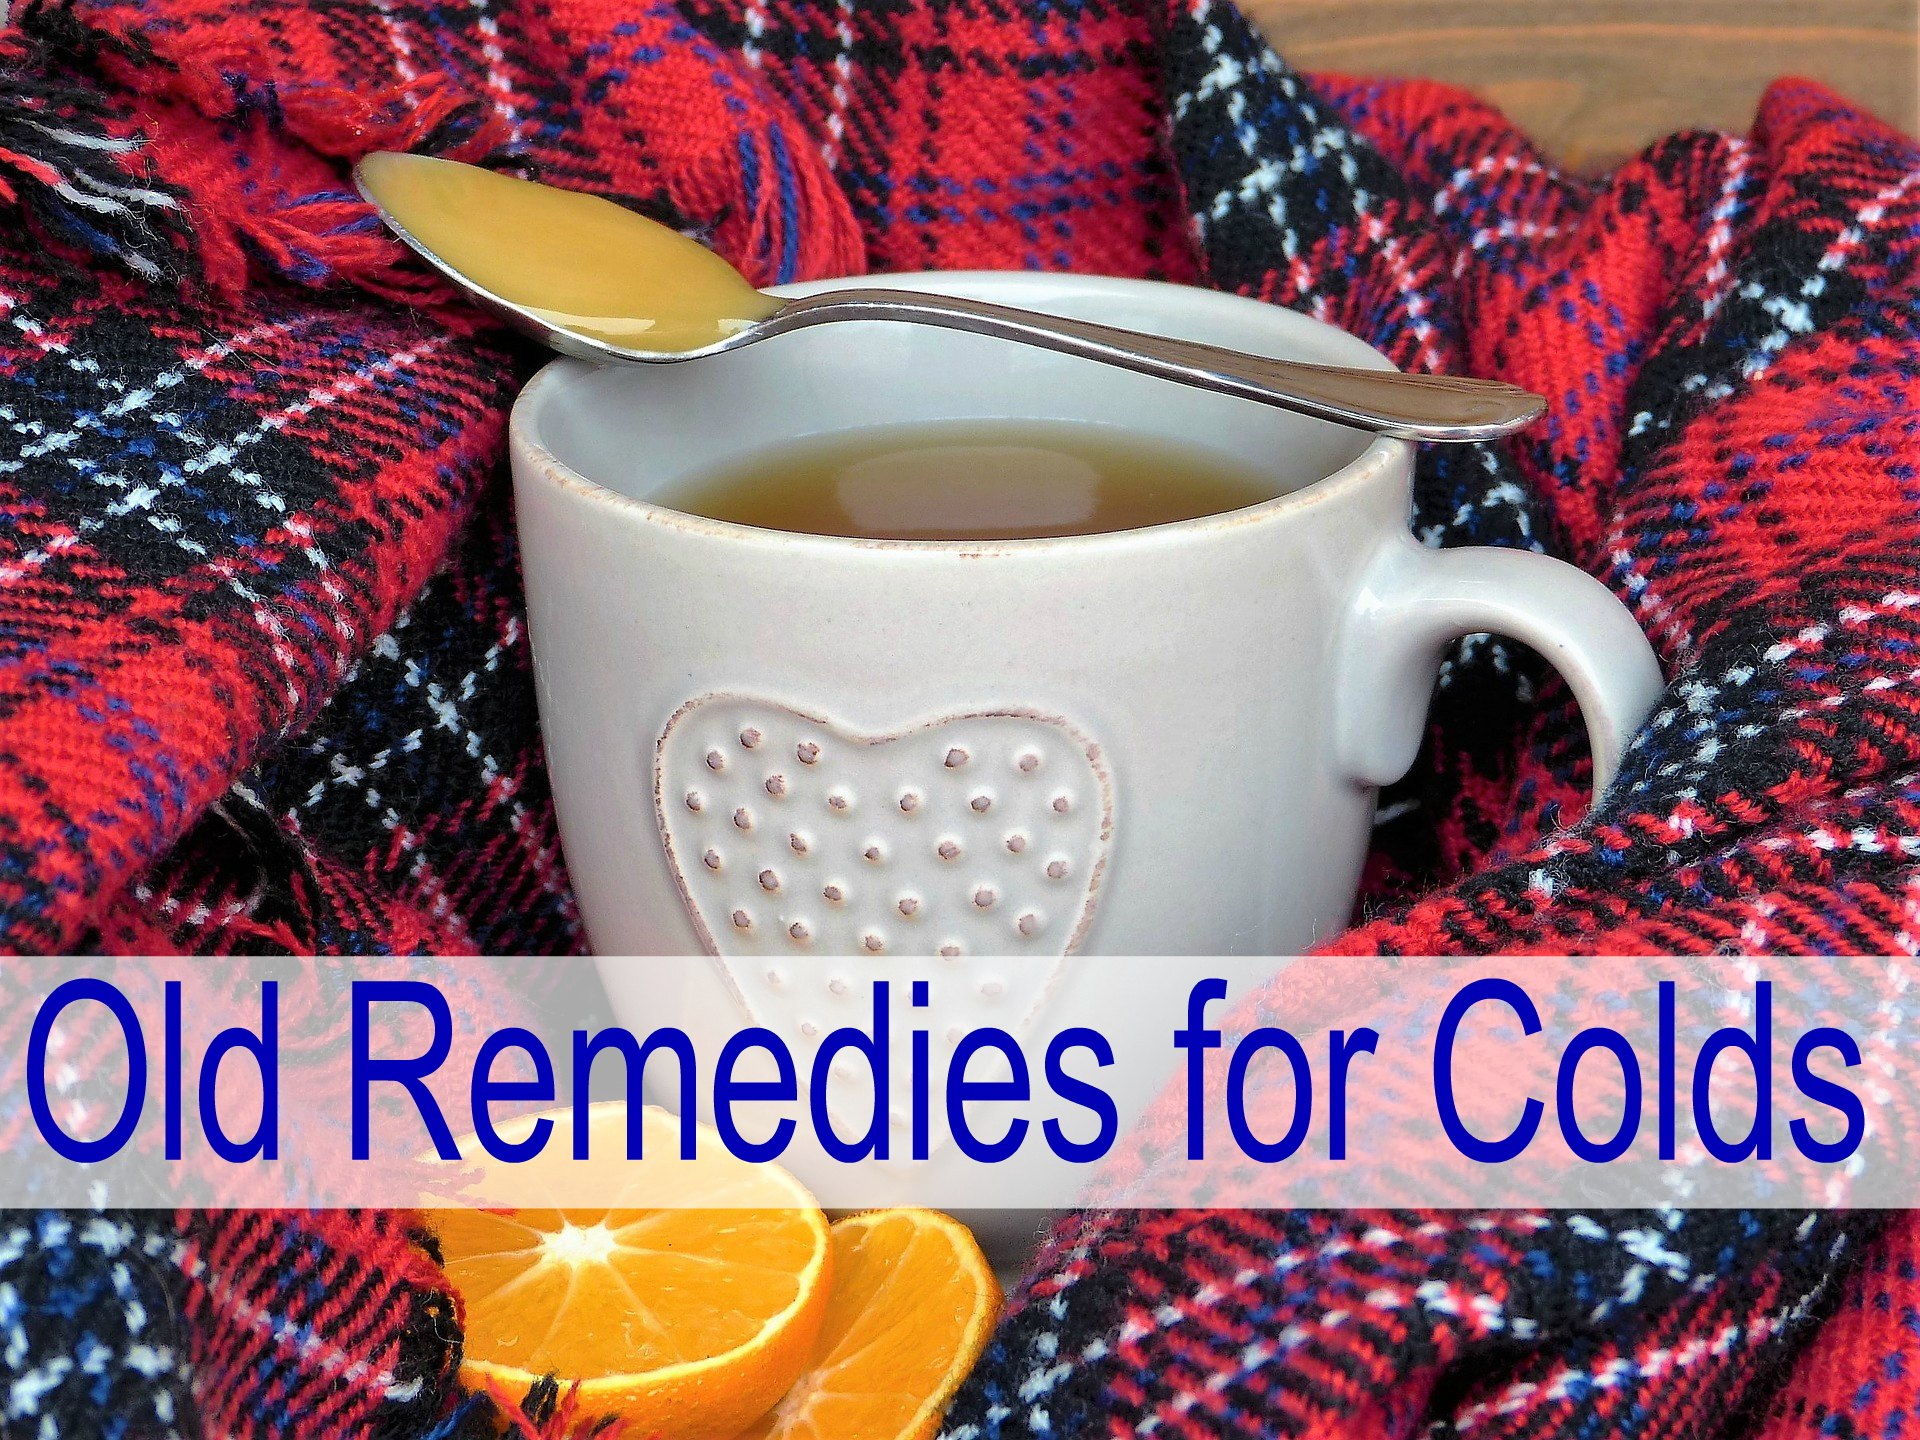 Old Remedies for Colds